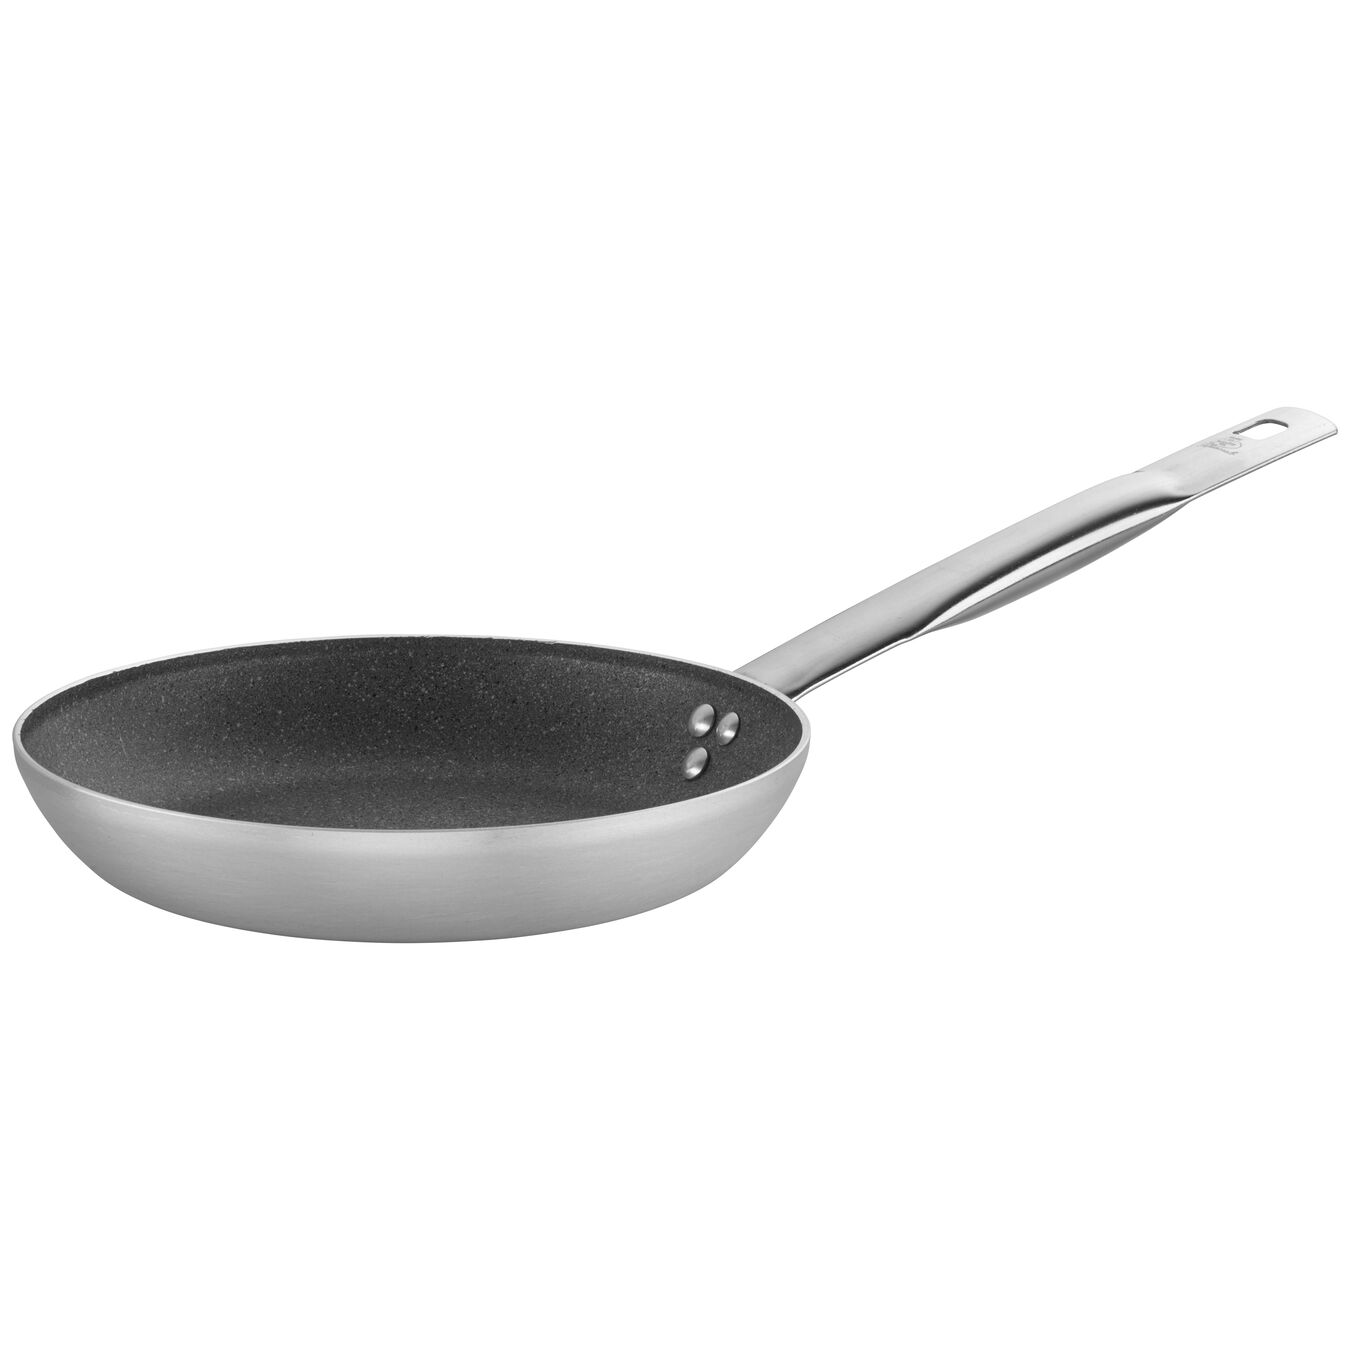 9.5-inch, Frying pan,,large 1